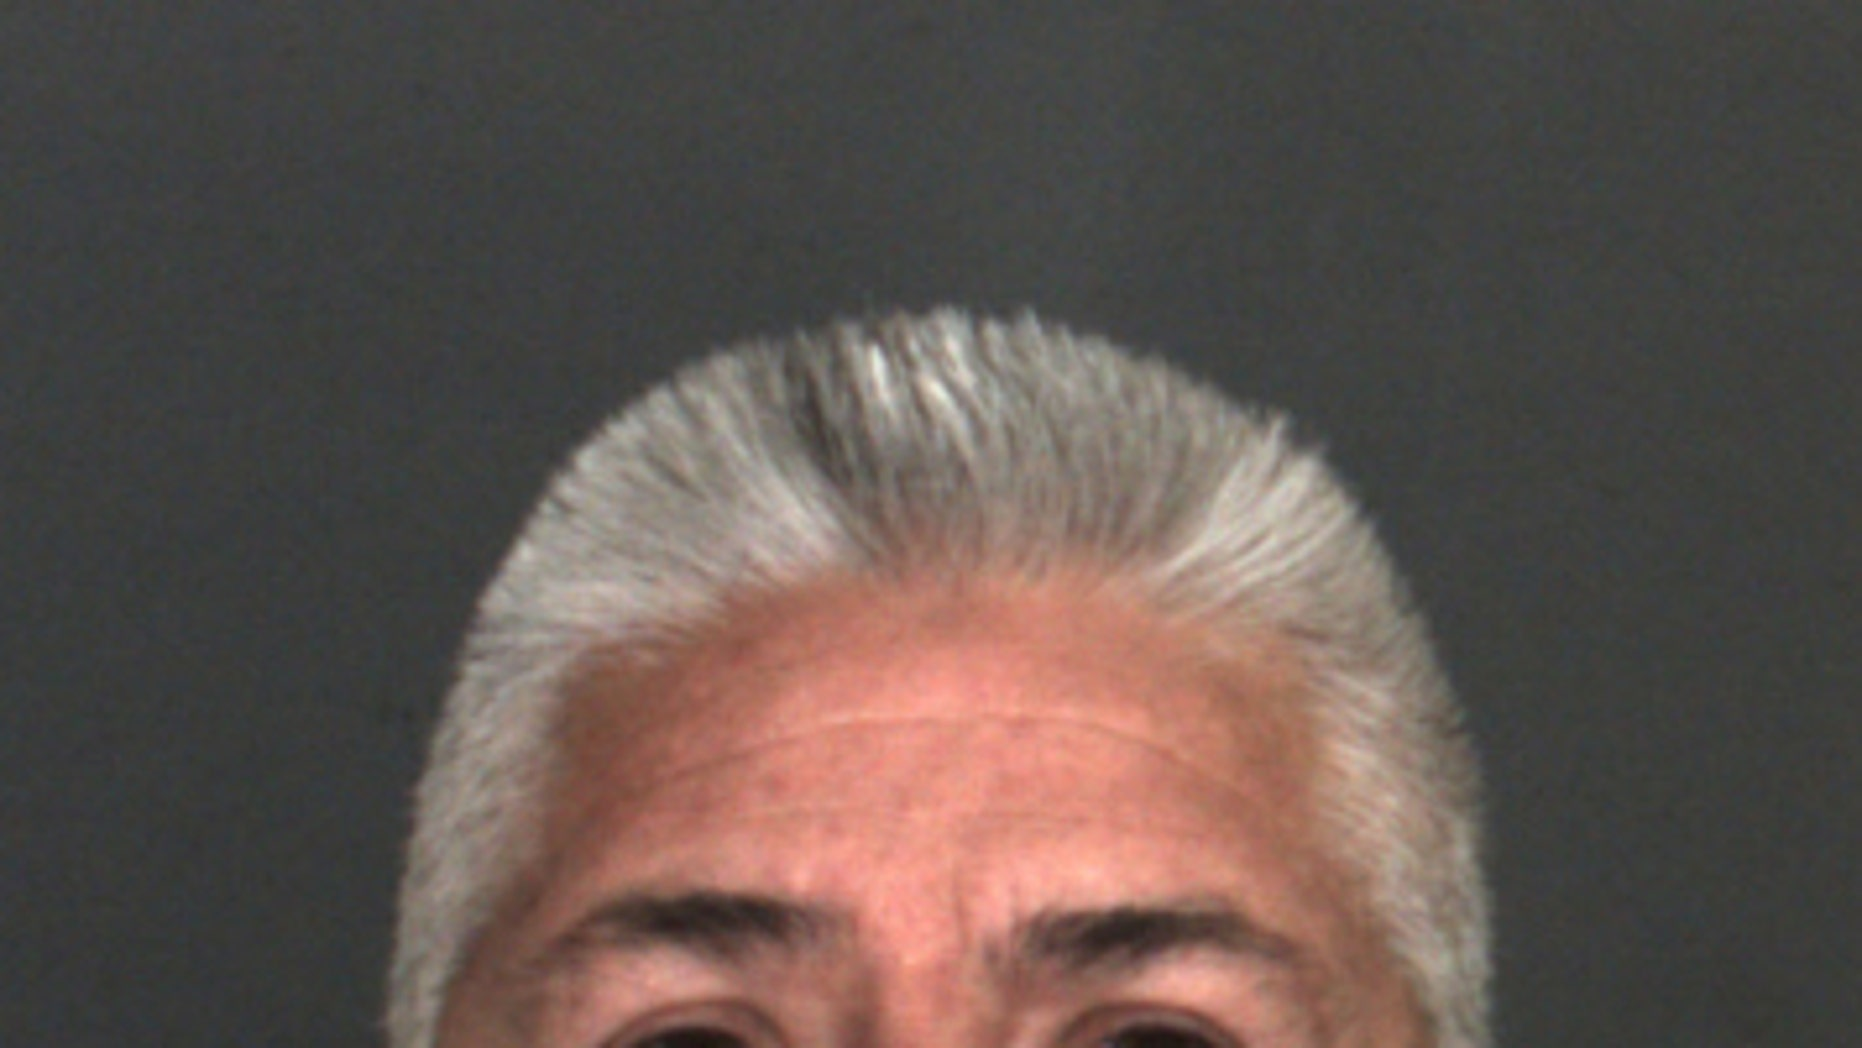 William Hernandez, 51, in a booking photo released by the San Bernardino County Sheriff's Department.